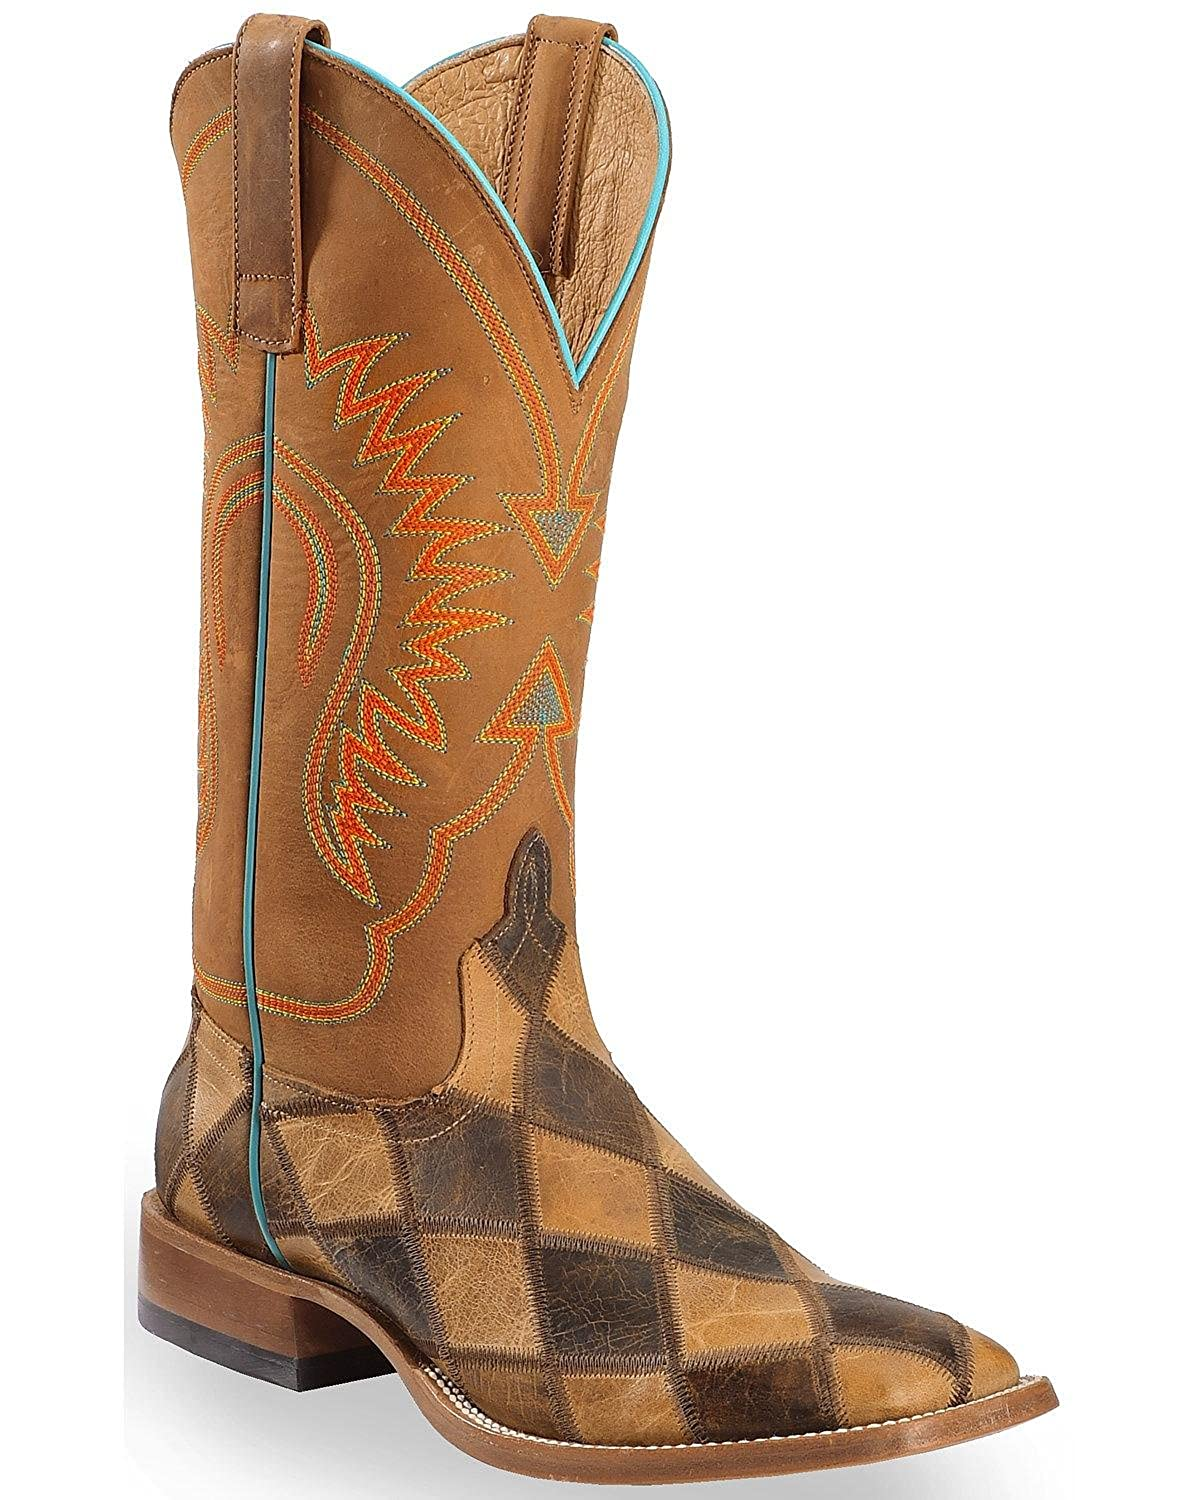 [Horse Power] メンズパッチワークWestern Boot Square Toe – hp1053 11 2E US Honey Crazy Horse B013Z5OHMS